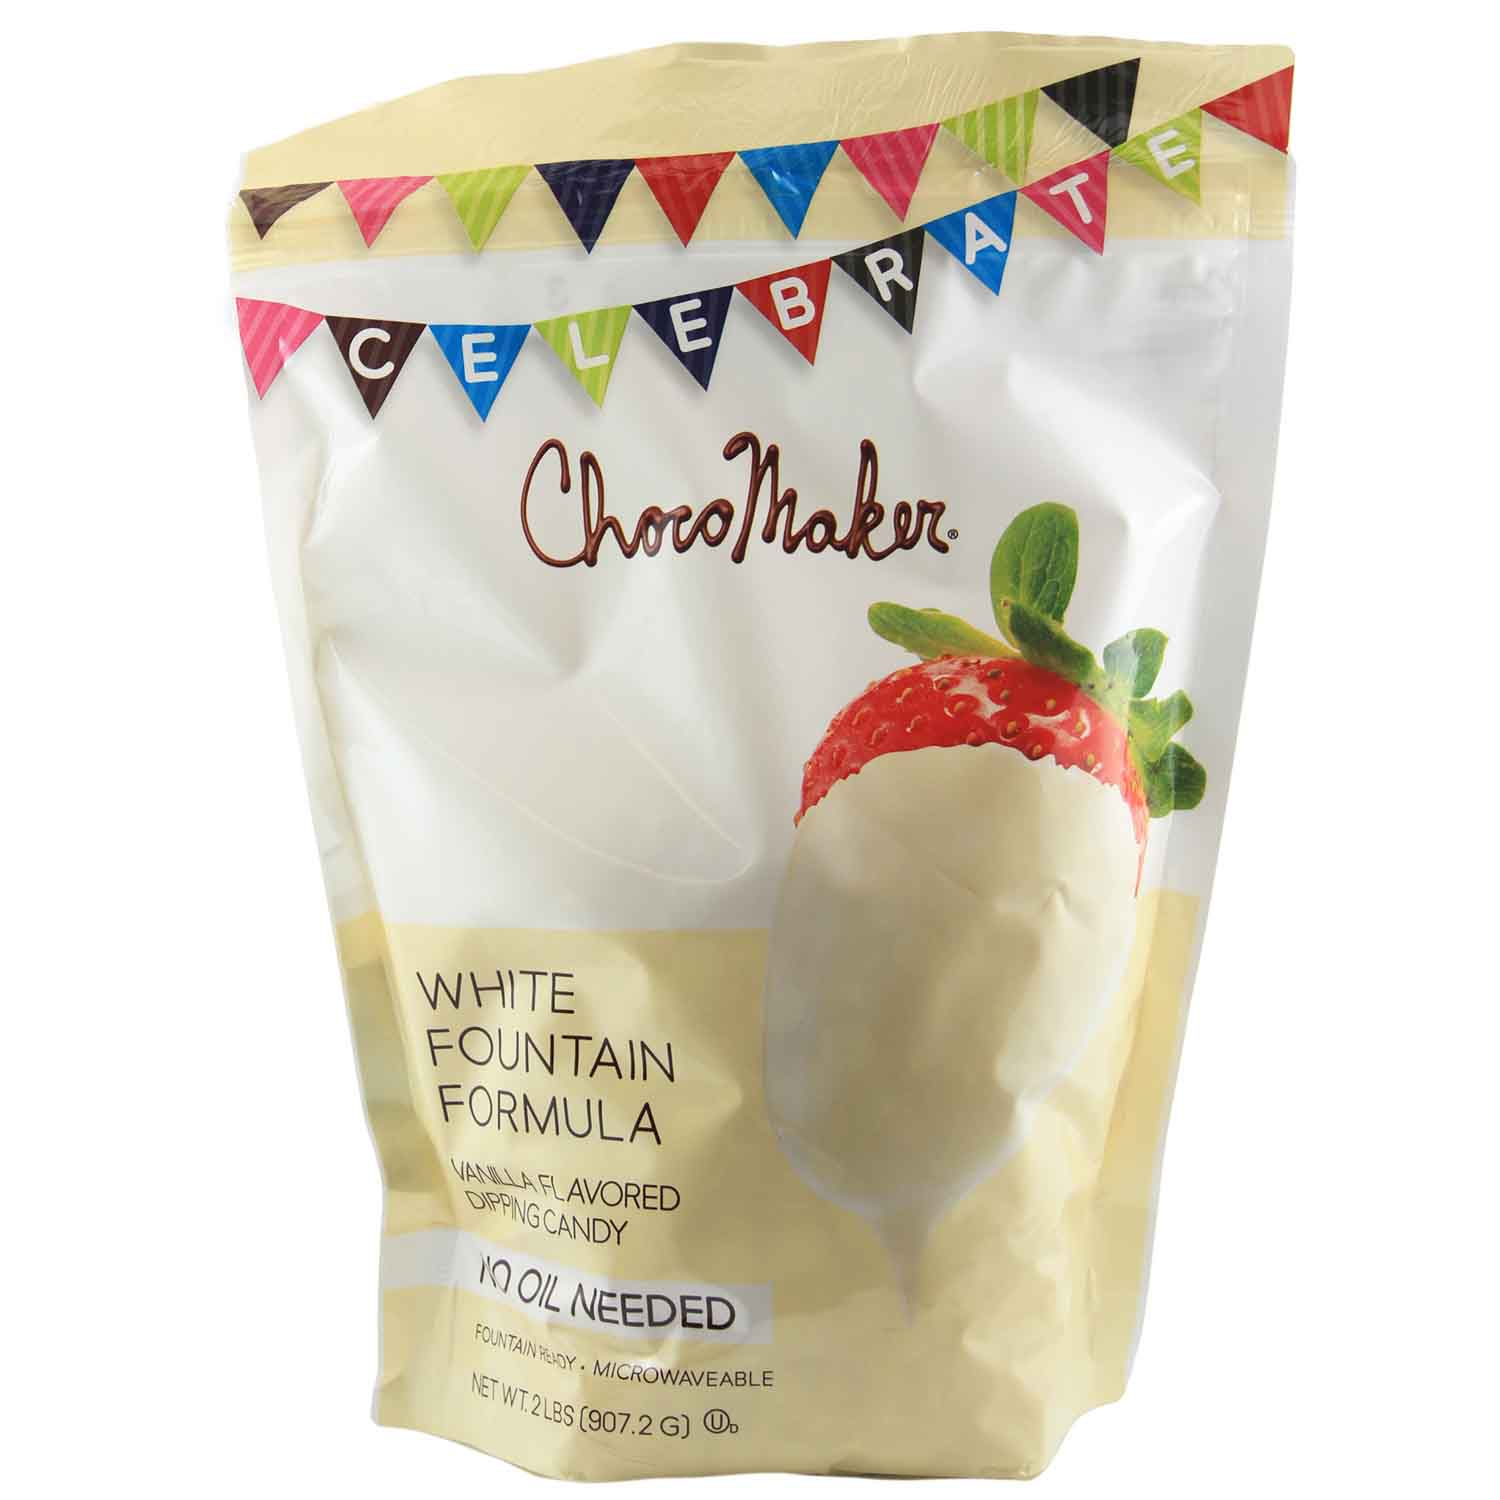 ChocoMaker White Chocolate Flavored Fountain Candy Coating